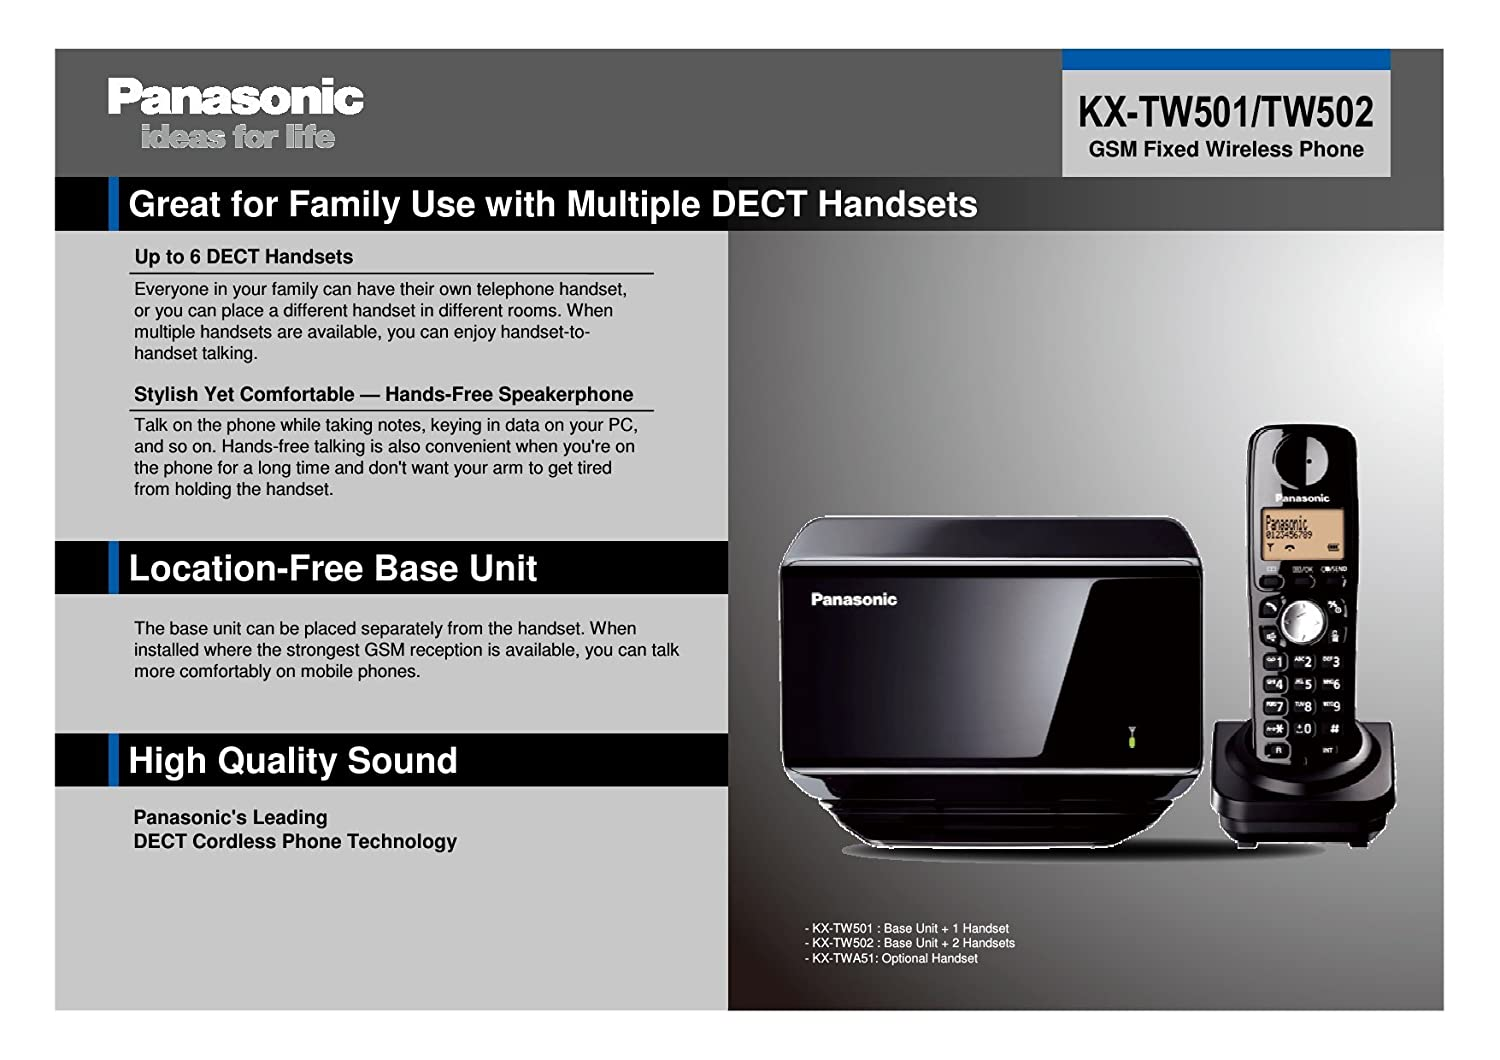 Panasonic Gsm Fixed Wireless Kx Tw501 Cxbe 2 Handsets Cordless Tg6811 Phone With Power Backup